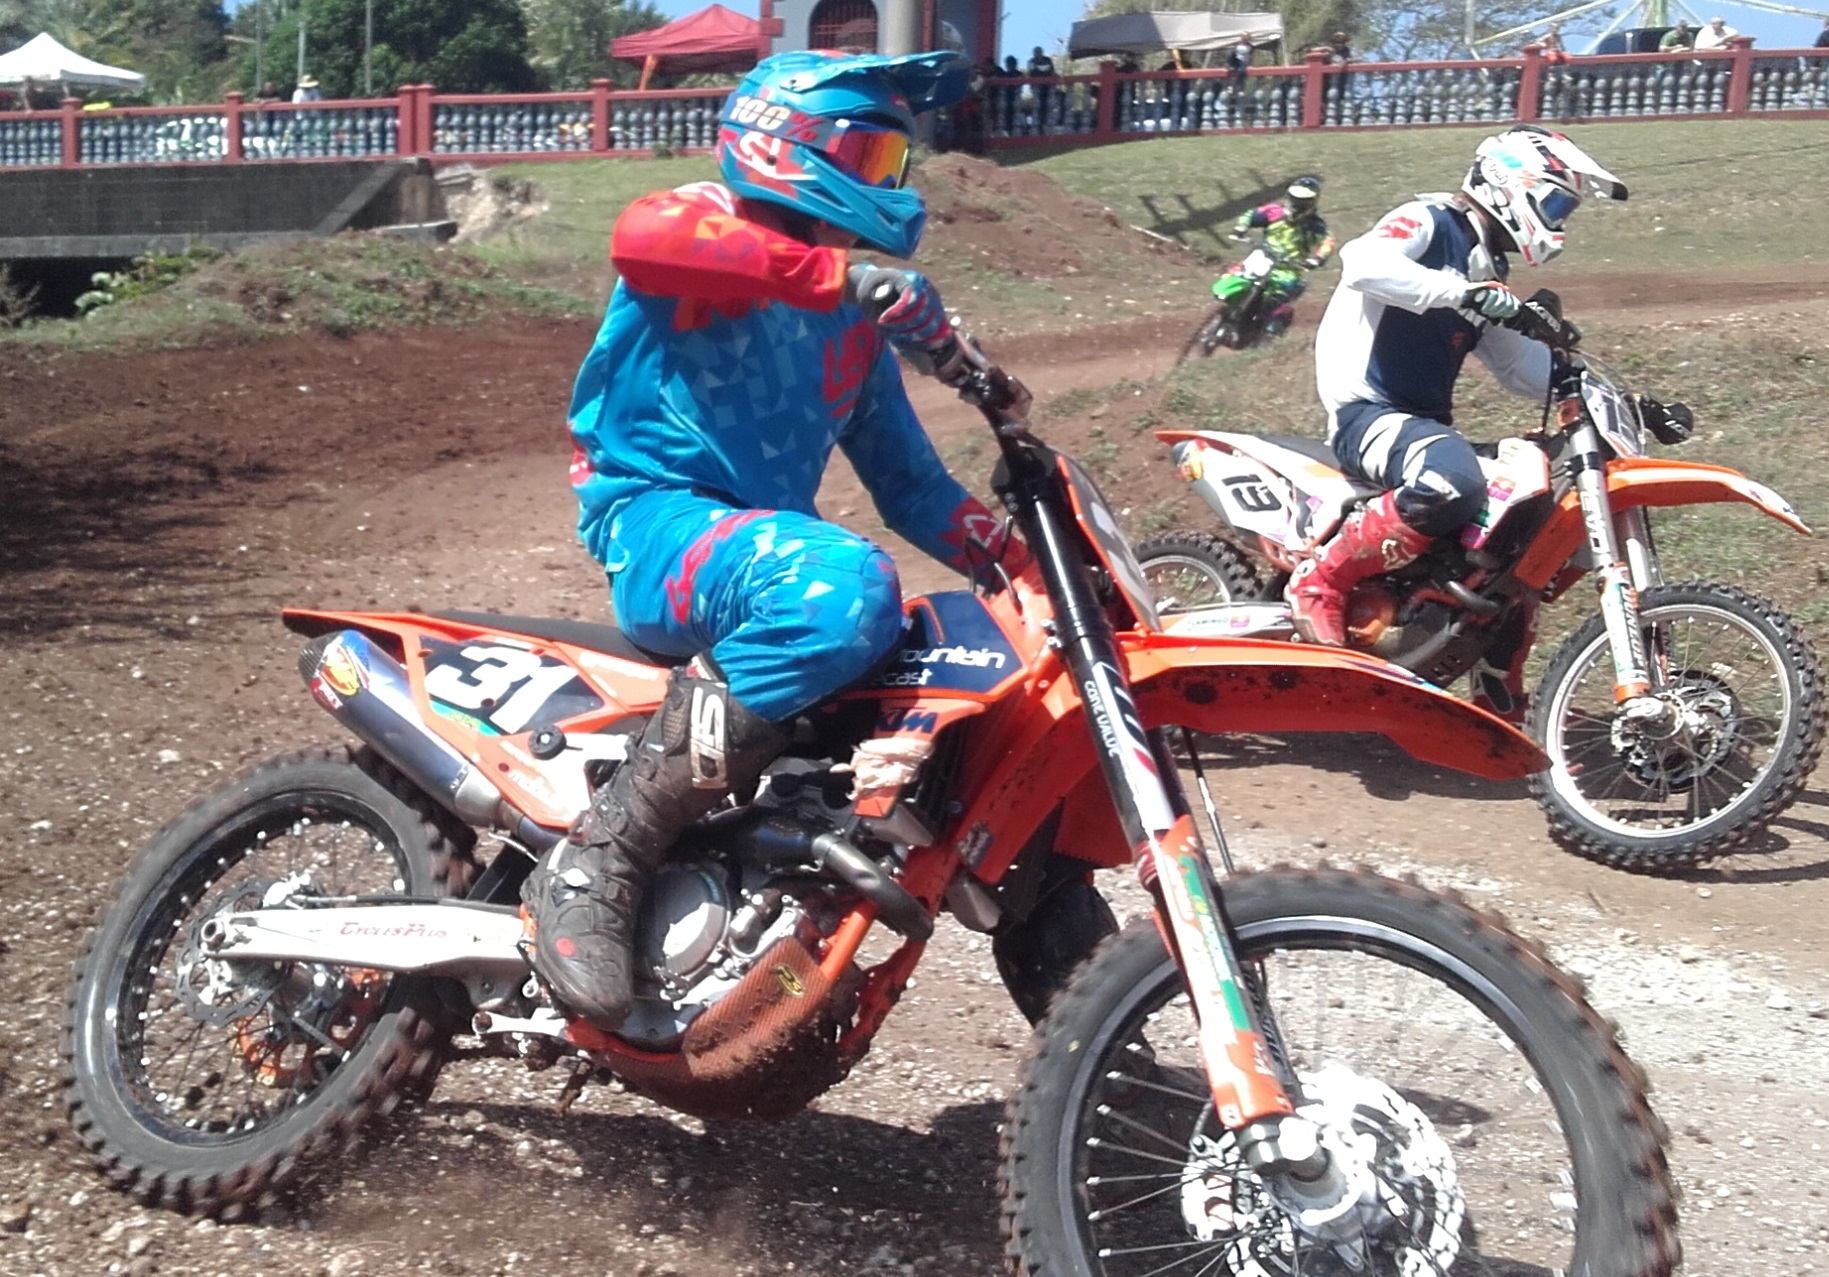 #31 Tim Wenden took the Open class win Sunday during the Guam Heritage Day MX in Umatac